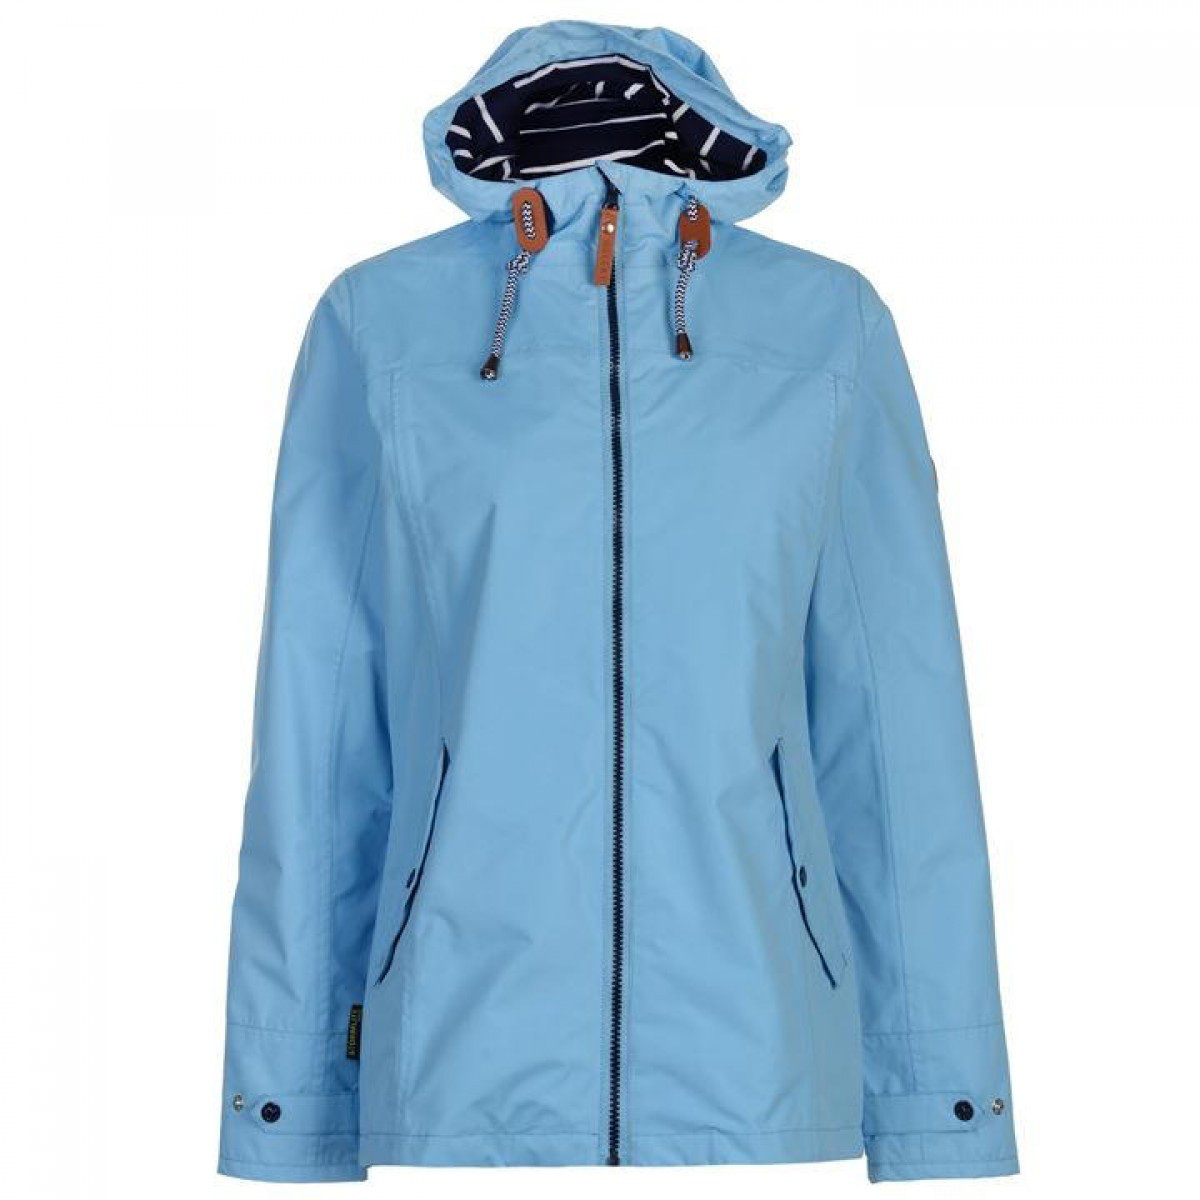 04da59fbfb5e Куртка Gelert Coast Waterproof Gelert CoolBlue - Оригинал — в Категории